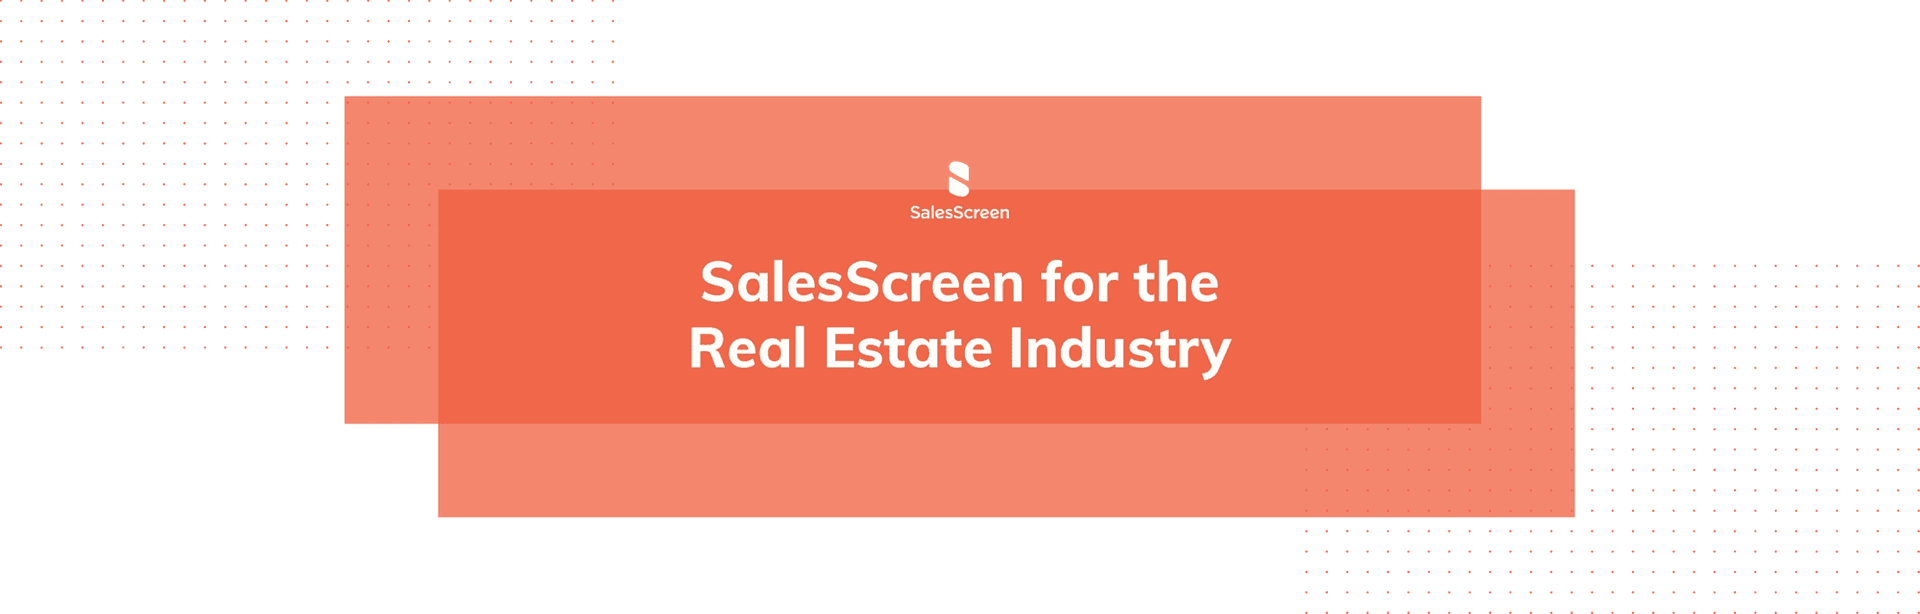 SalesScreen for the Real Estate Industry